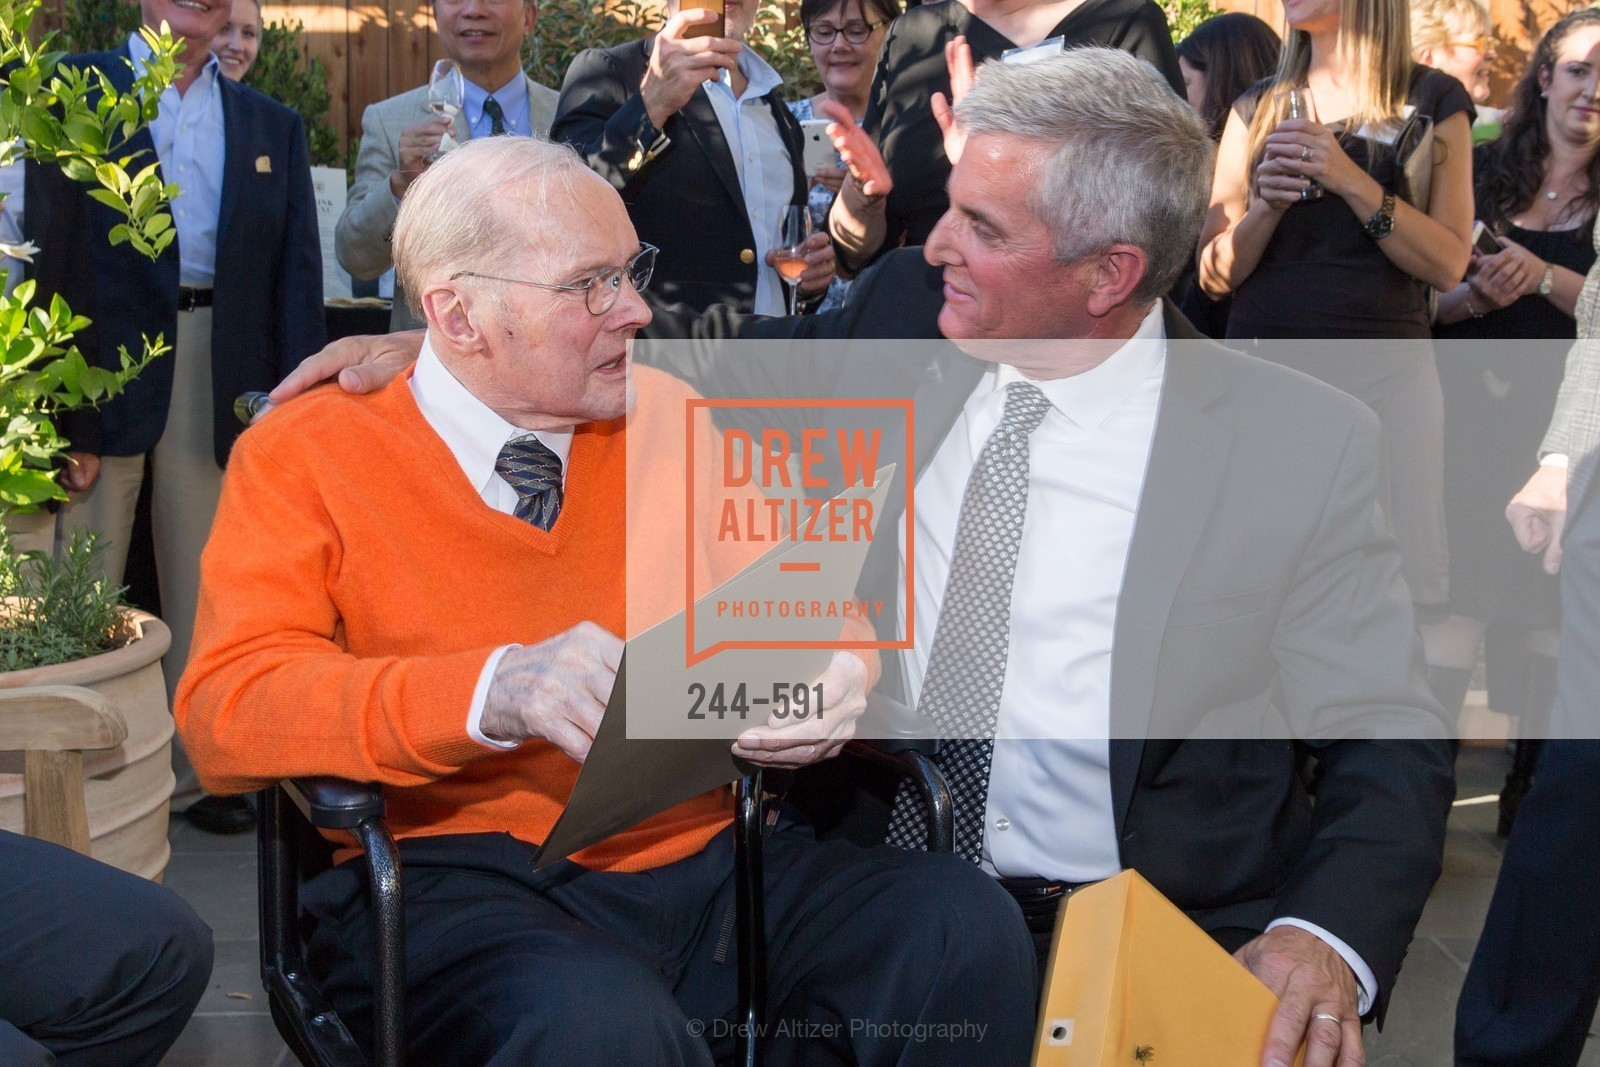 Chuck Williams, Tom Rouse, CHUCK WILLIAMS Birthday Celebration, US, October 2nd, 2014,Drew Altizer, Drew Altizer Photography, full-service agency, private events, San Francisco photographer, photographer california